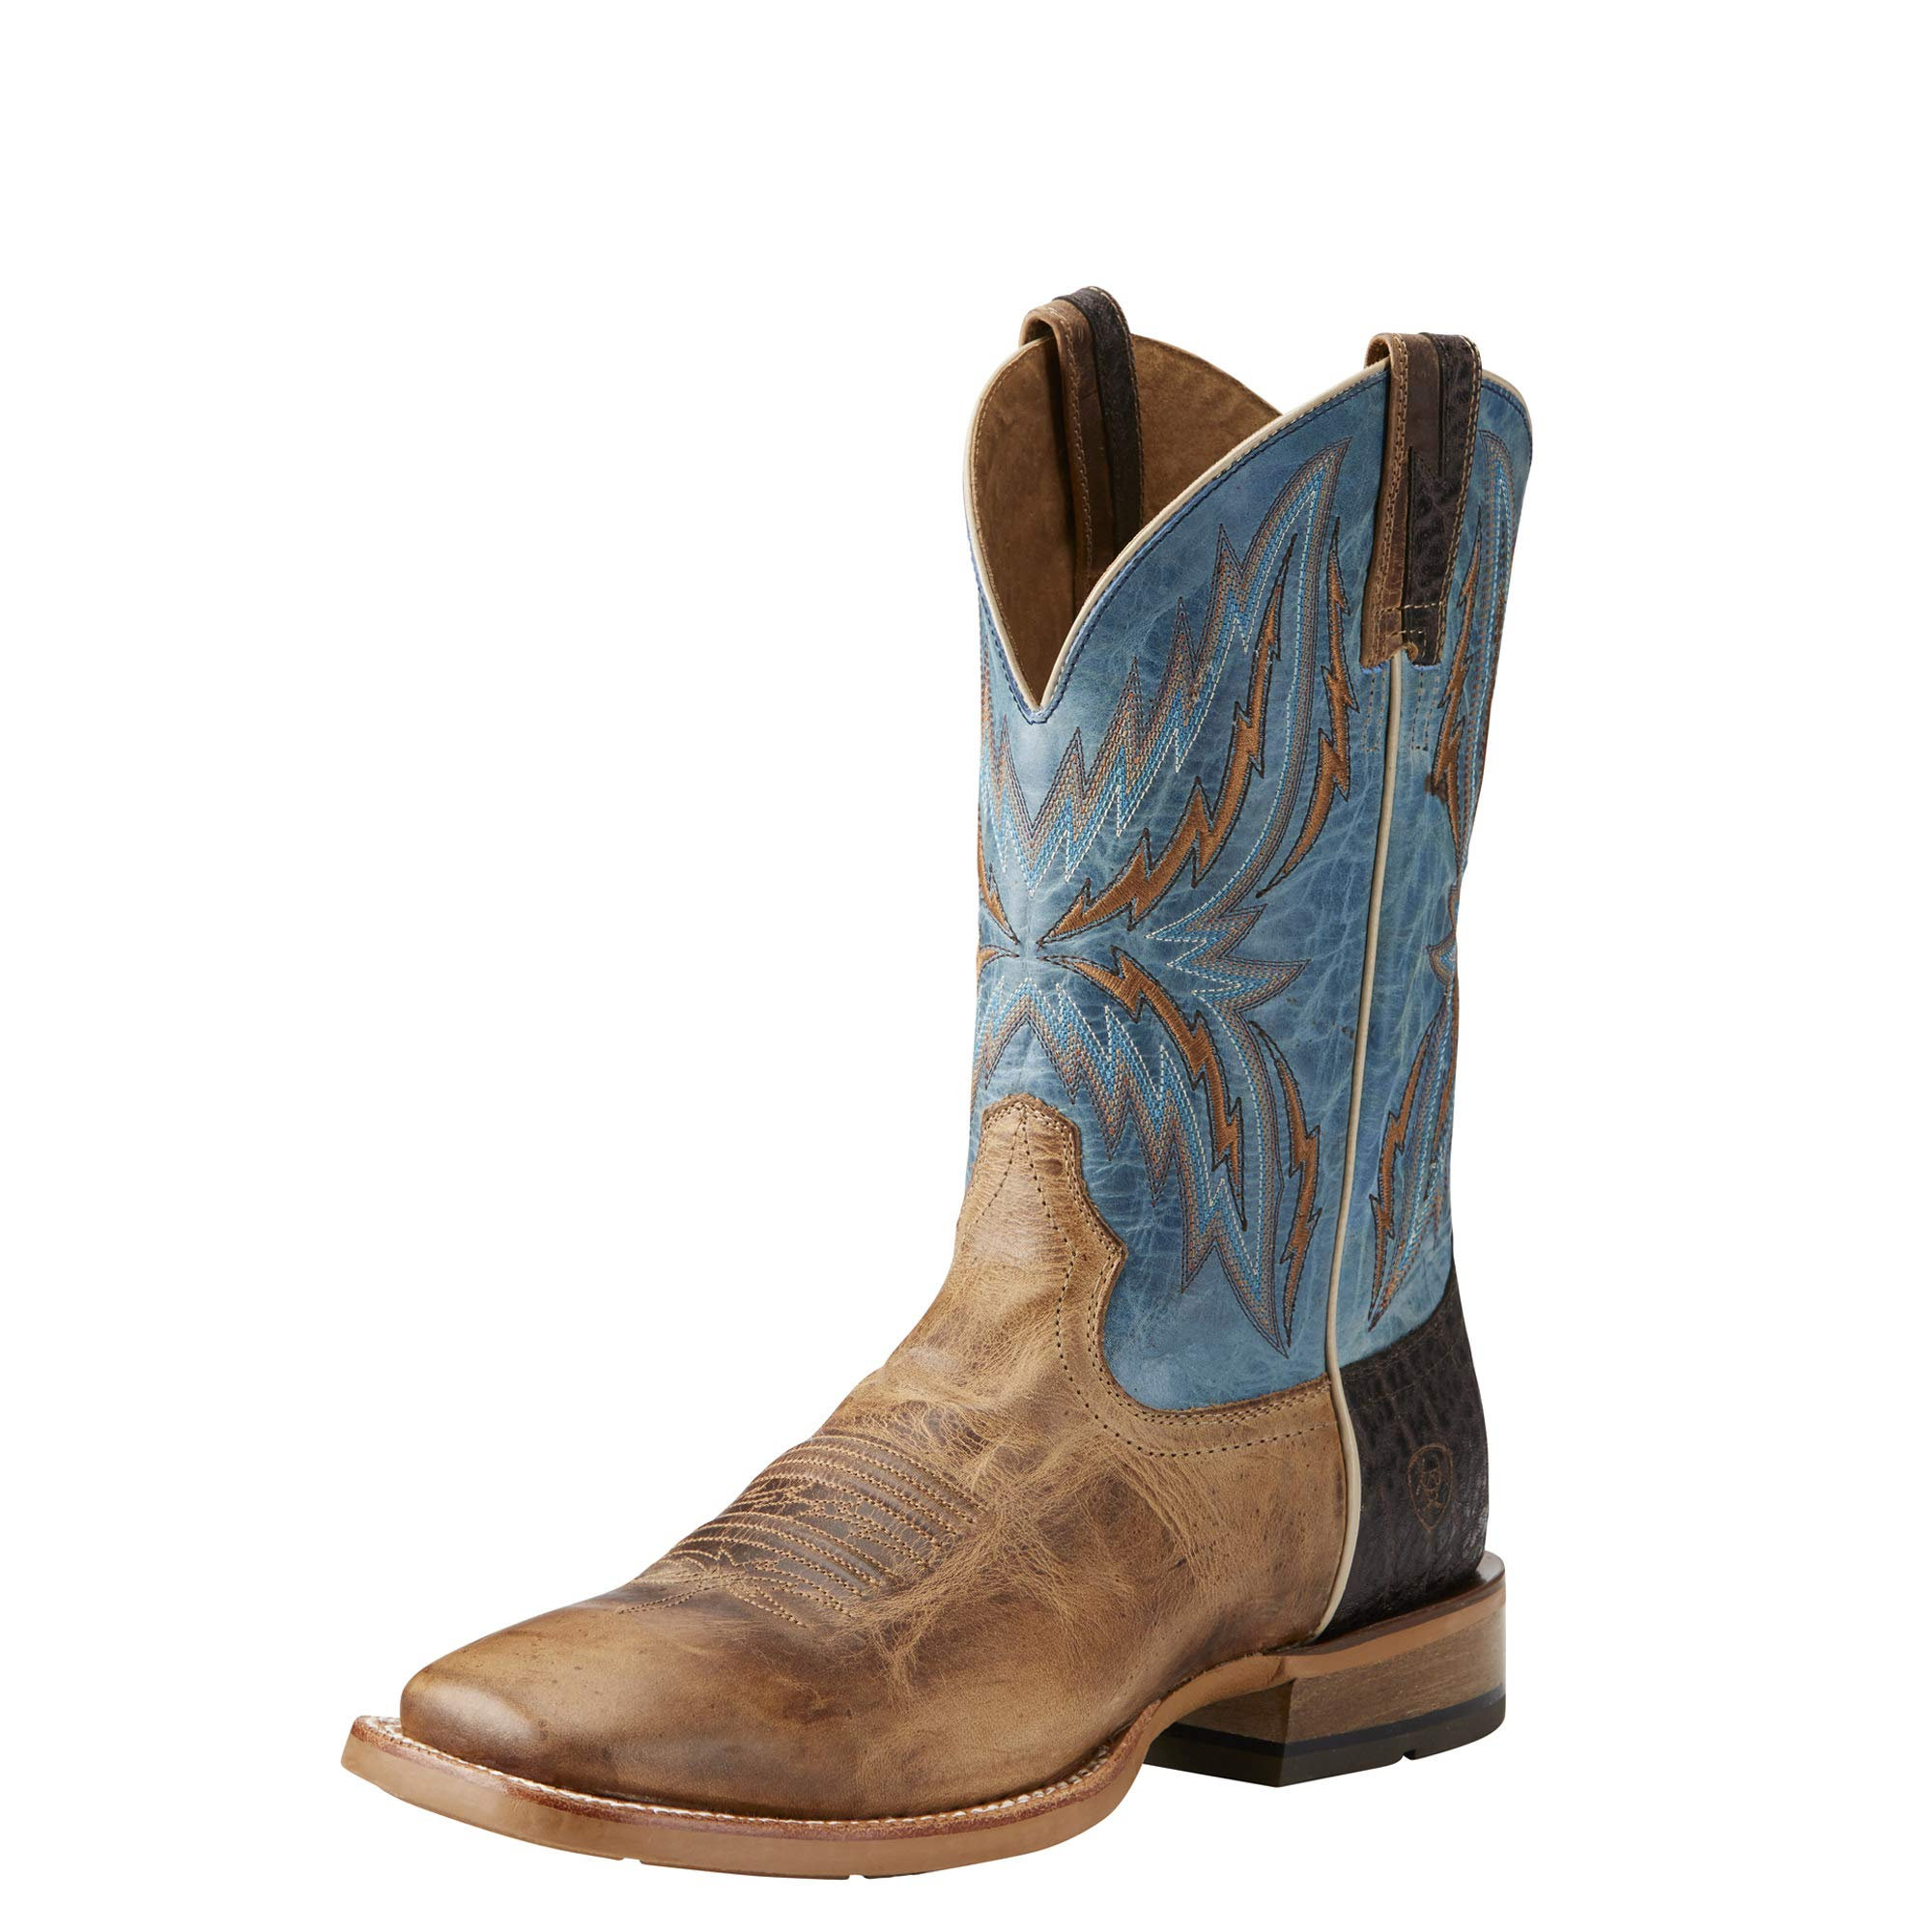 ARIAT Men's Arena Rebound Western Boot Dusted Wheat Size 9 N Us by ARIAT